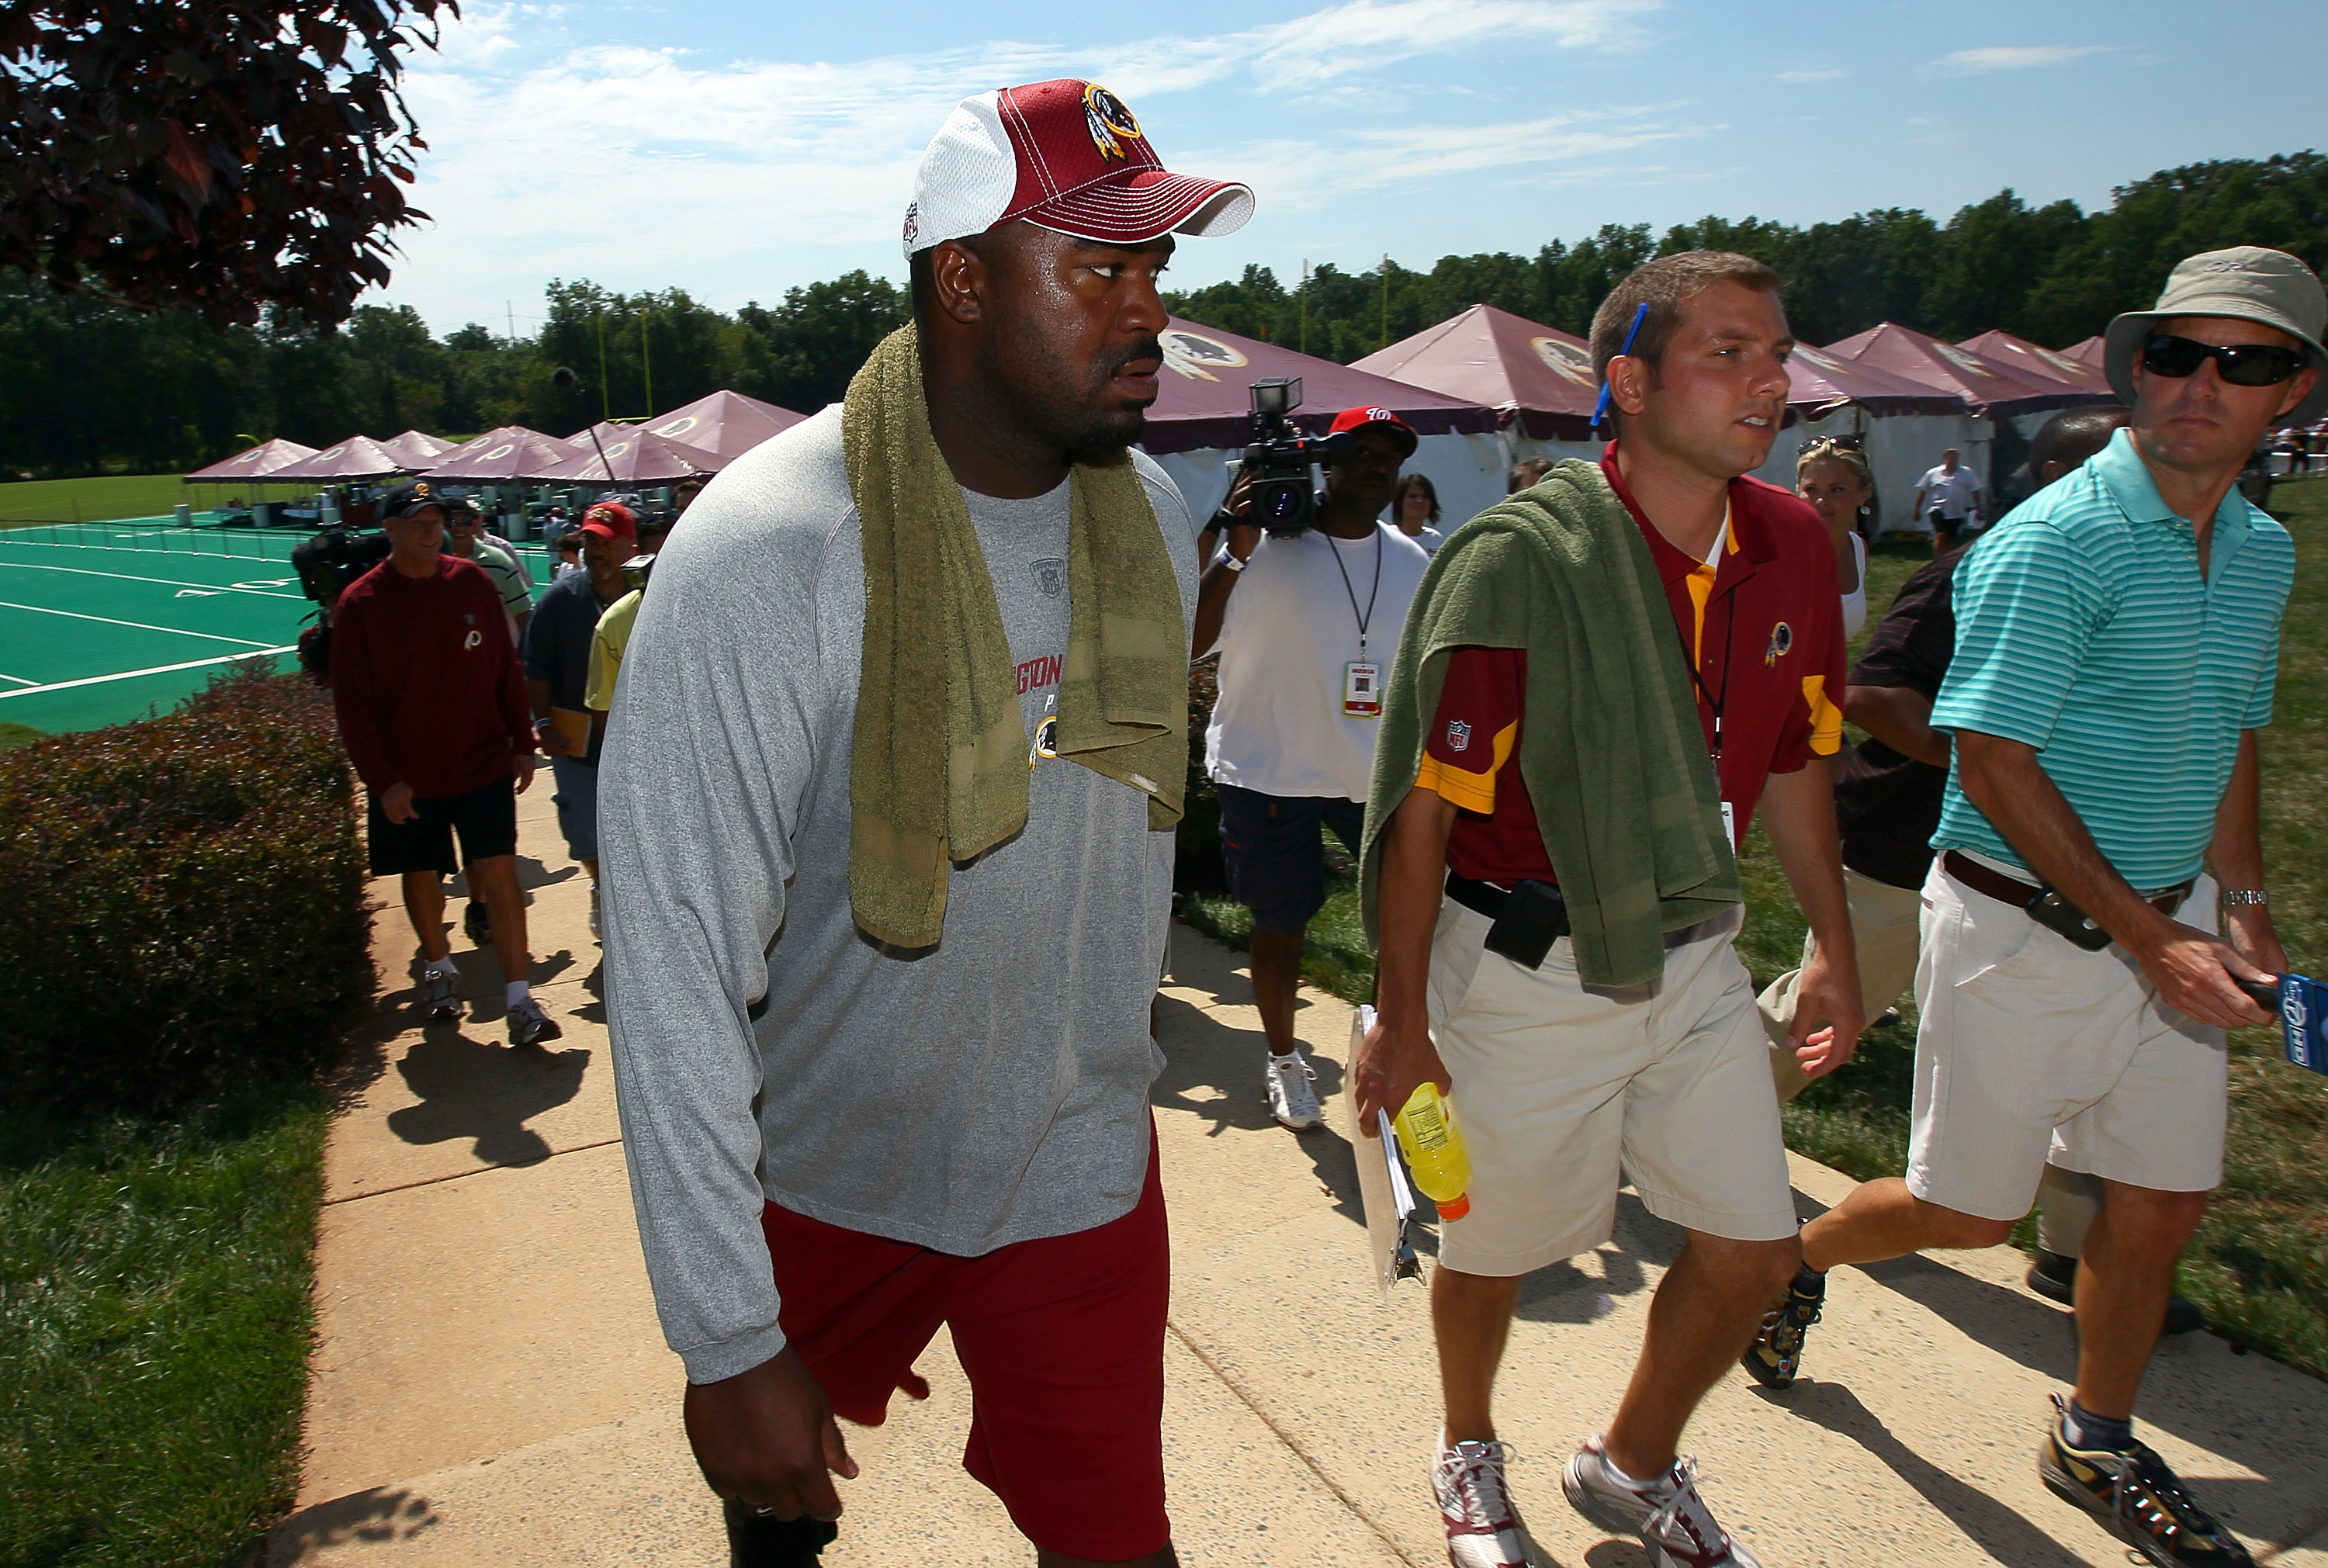 ASHBURN, VA - JULY 30:  Defensive lineman Albert Haynesworth #92 (L) returns to the locker room following a workout session with Redskins defensive coordinator Jim Haslett (2nd L) on the second day of training camp July 30, 2010 in Ashburn, Virginia. Hayn